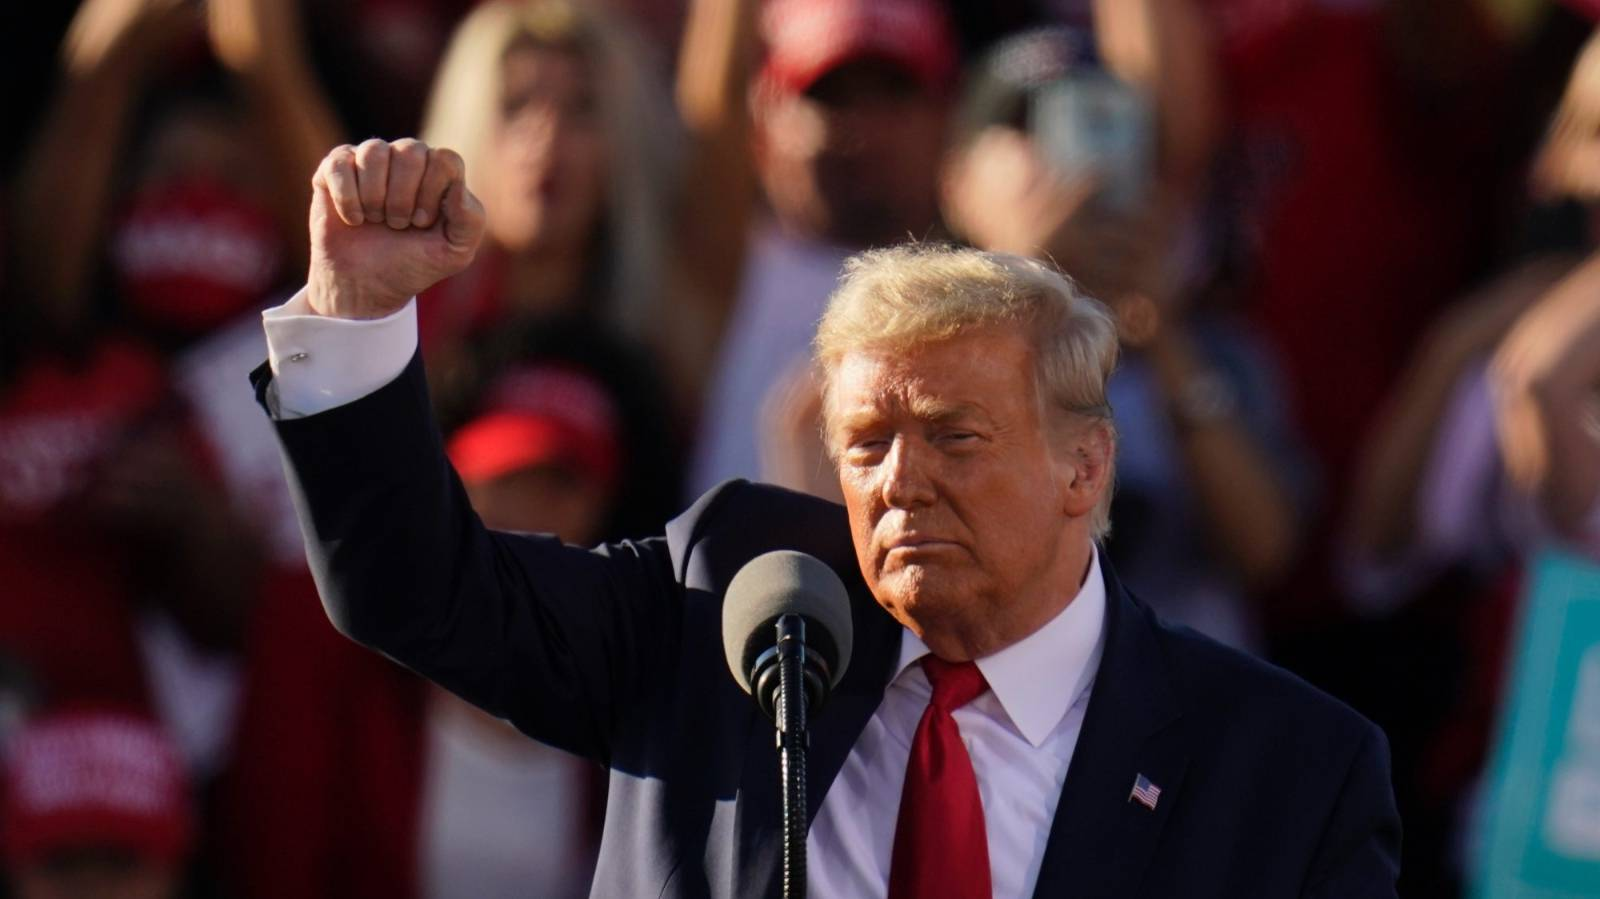 Is President Donald Trump the 'Divider-in-Chief' or a hero?